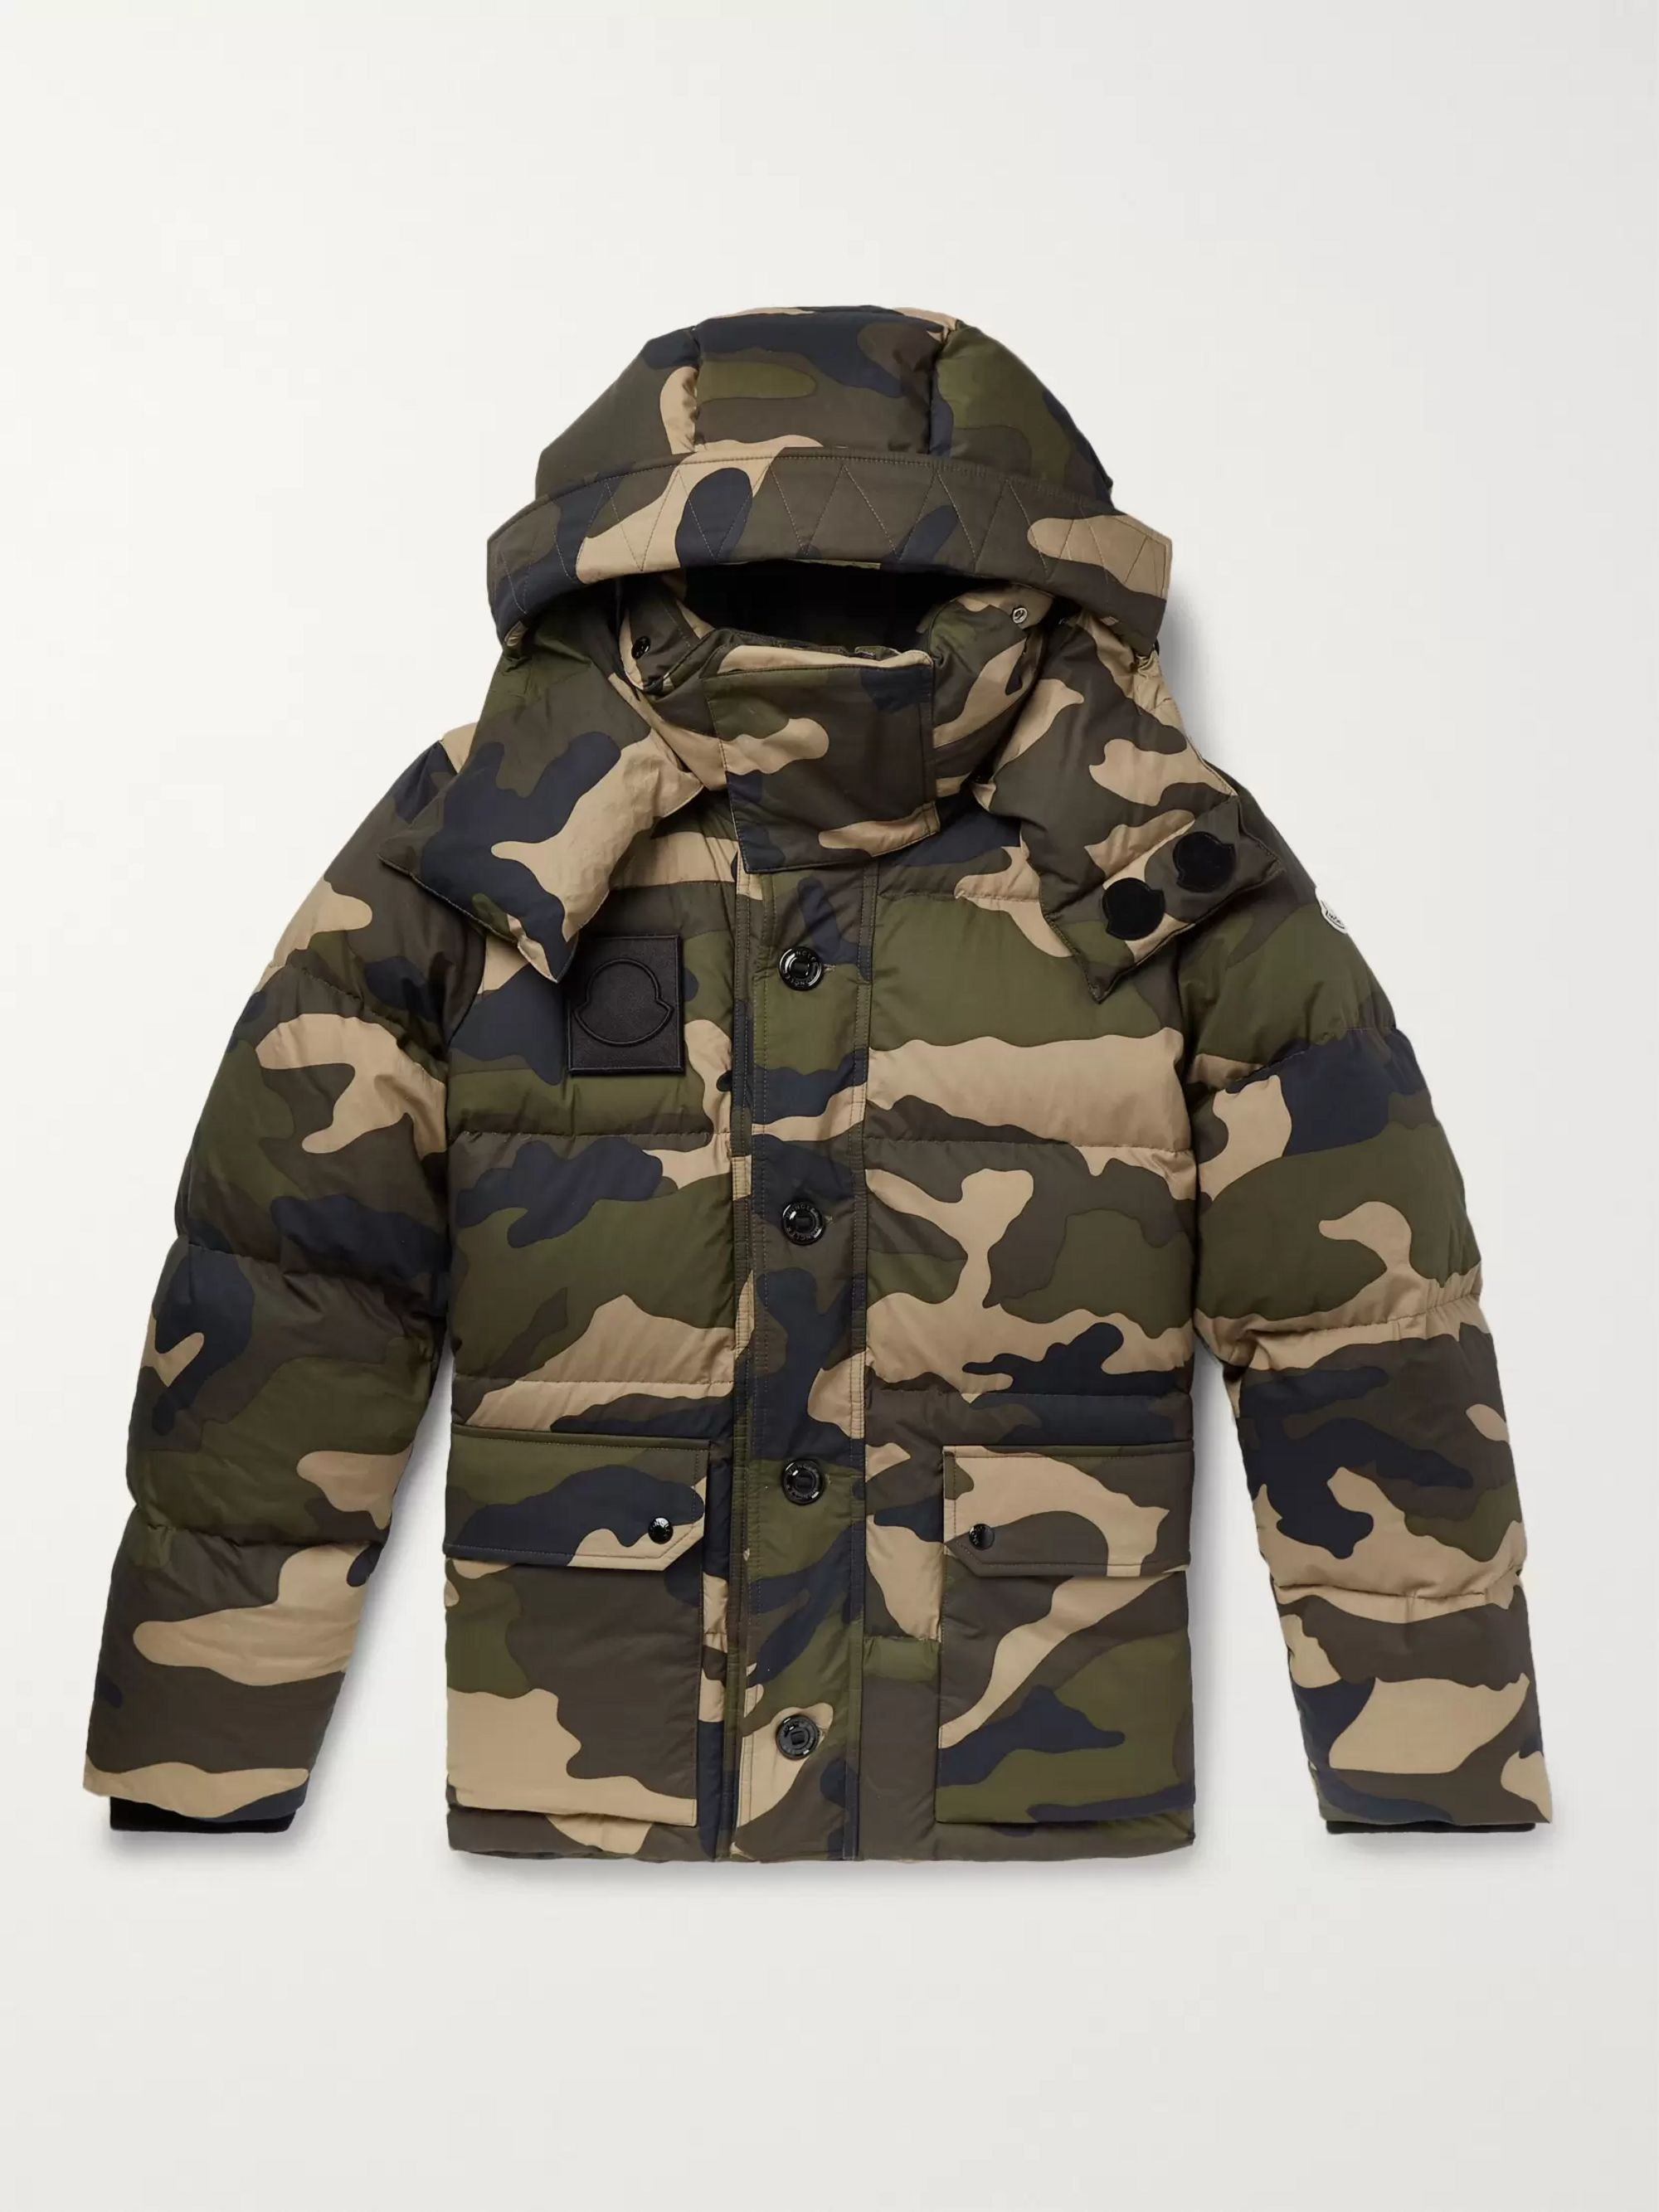 Dary Slim Fit Camouflage Print Quilted Cotton Shell Hooded Down Jacket by Moncler